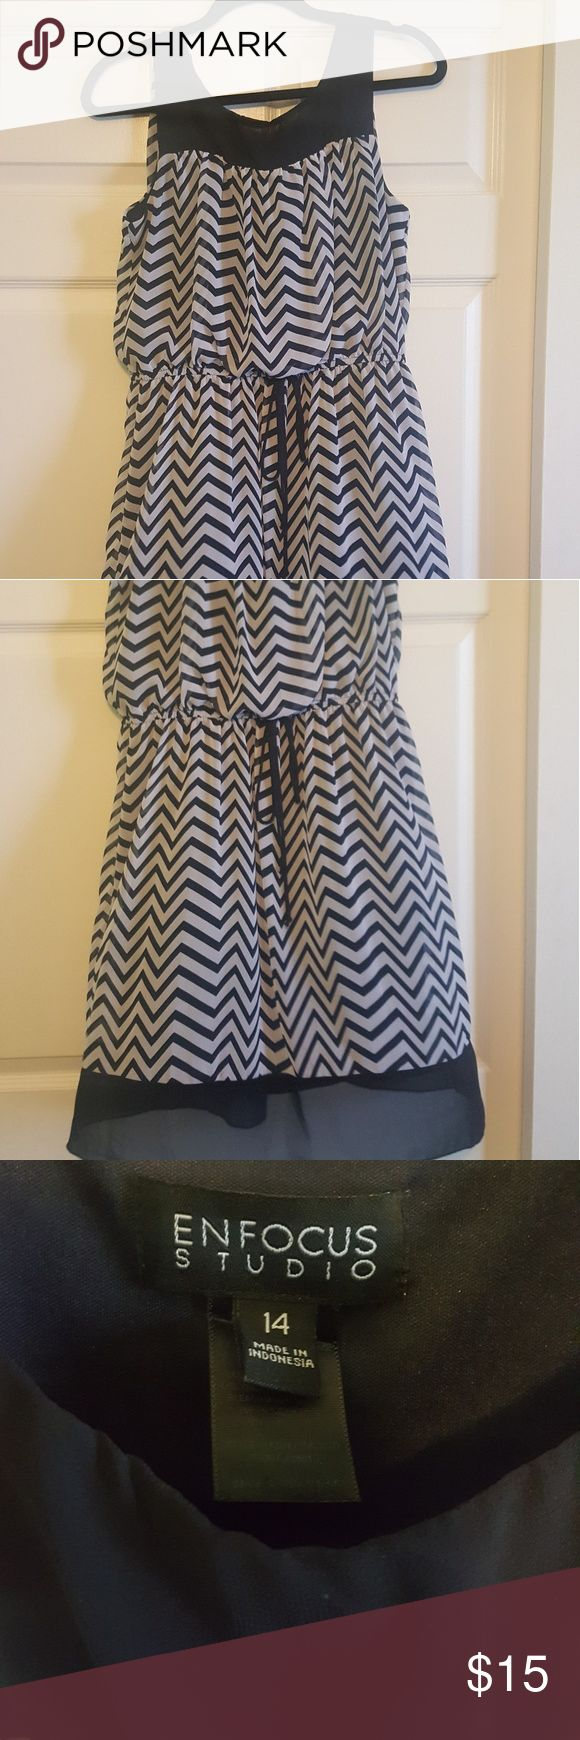 Chevron dress White and navy chevron dress.  Sheer fully lined with a drawstring waist. Hits above the knee Dresses Mini